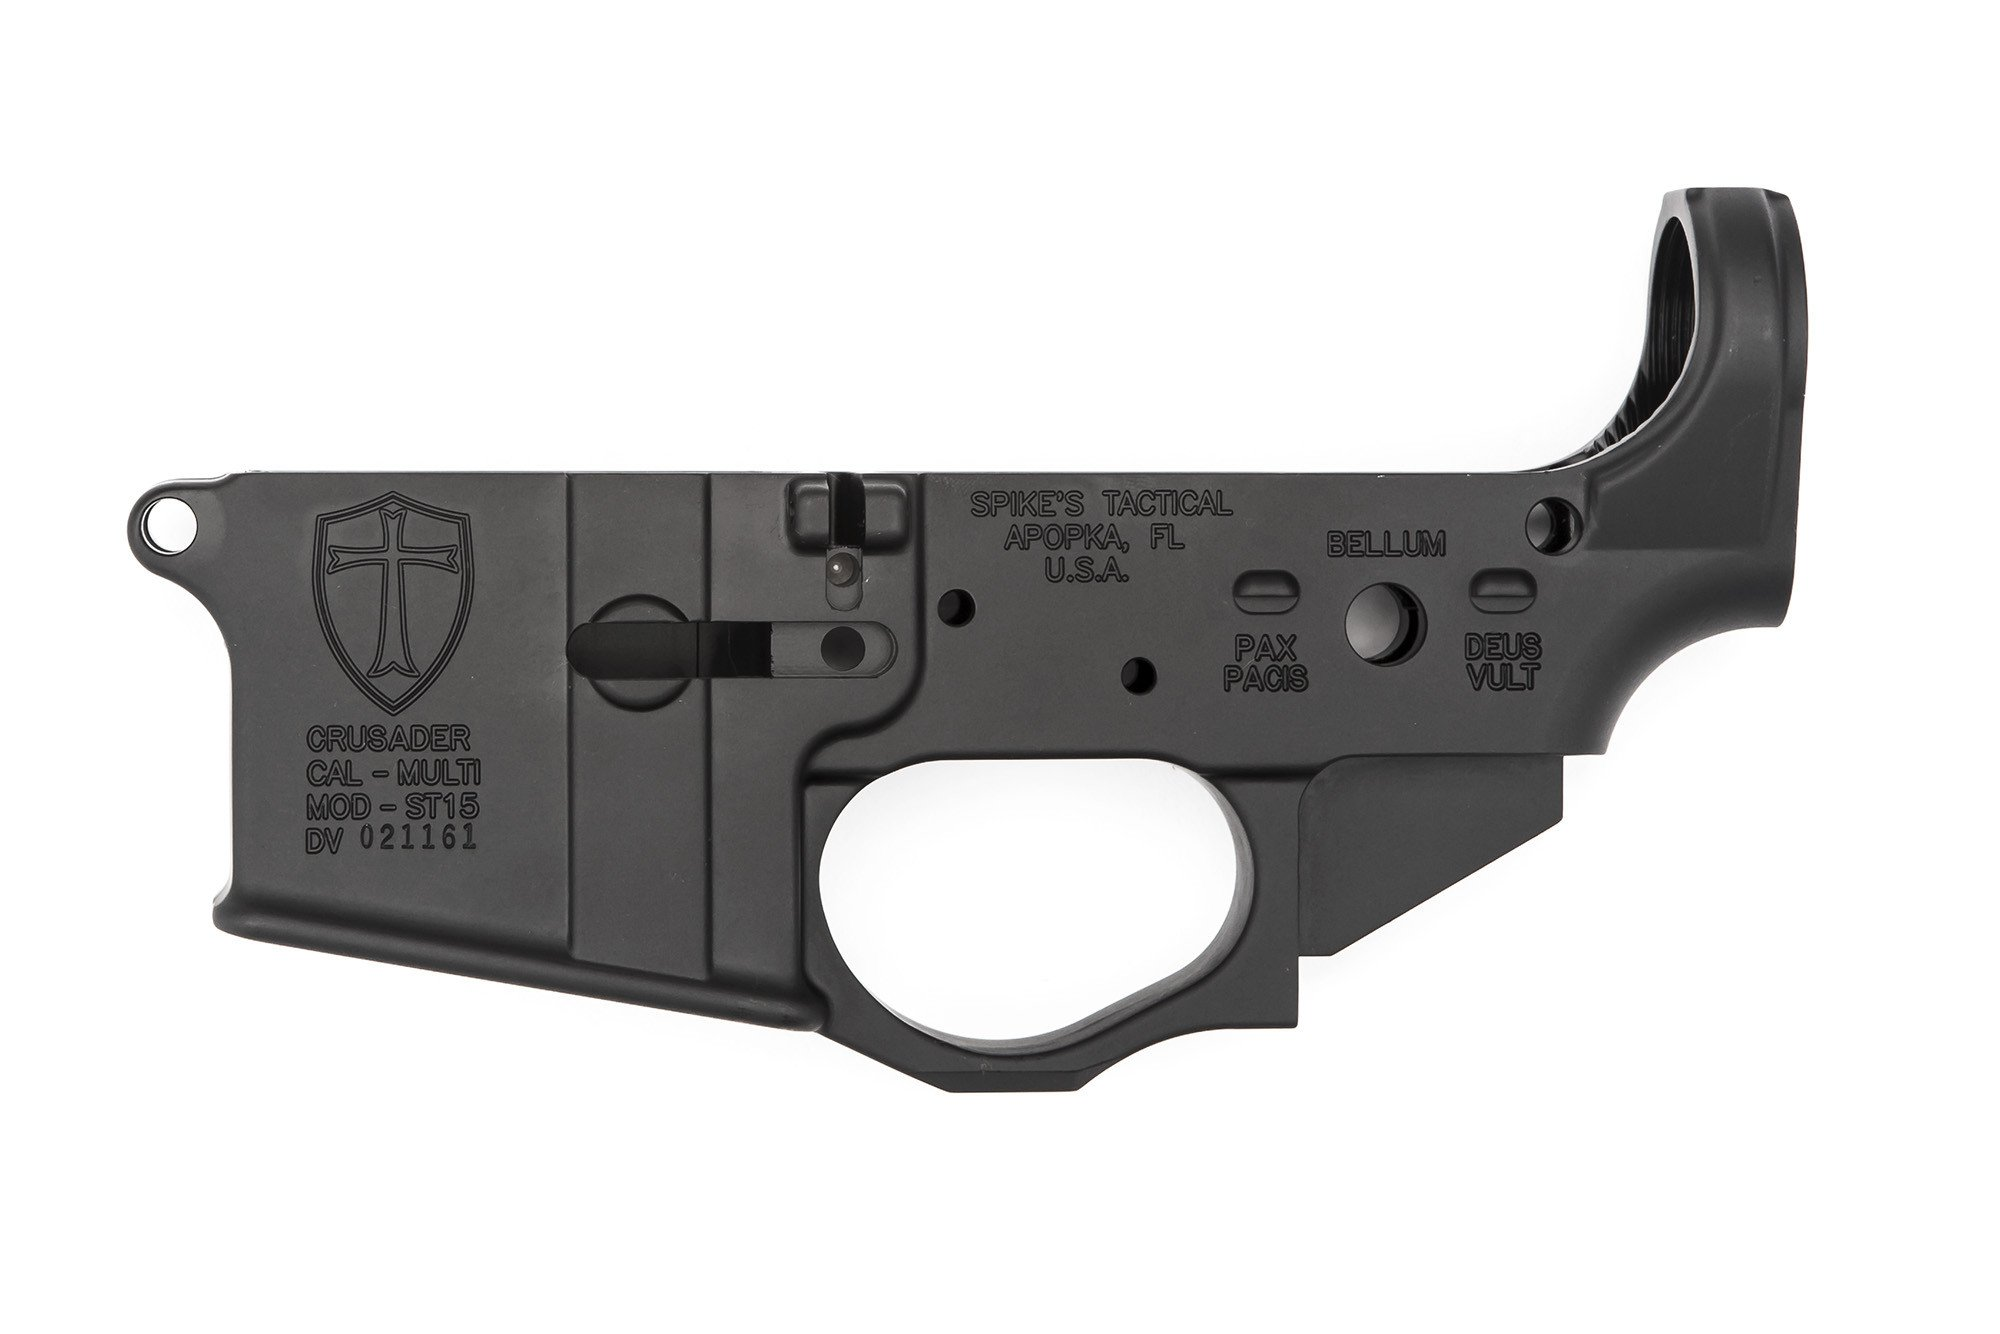 ar15-spikes-tactical-stripped-lower-receiver-spartan-logo-anodized-black-900222